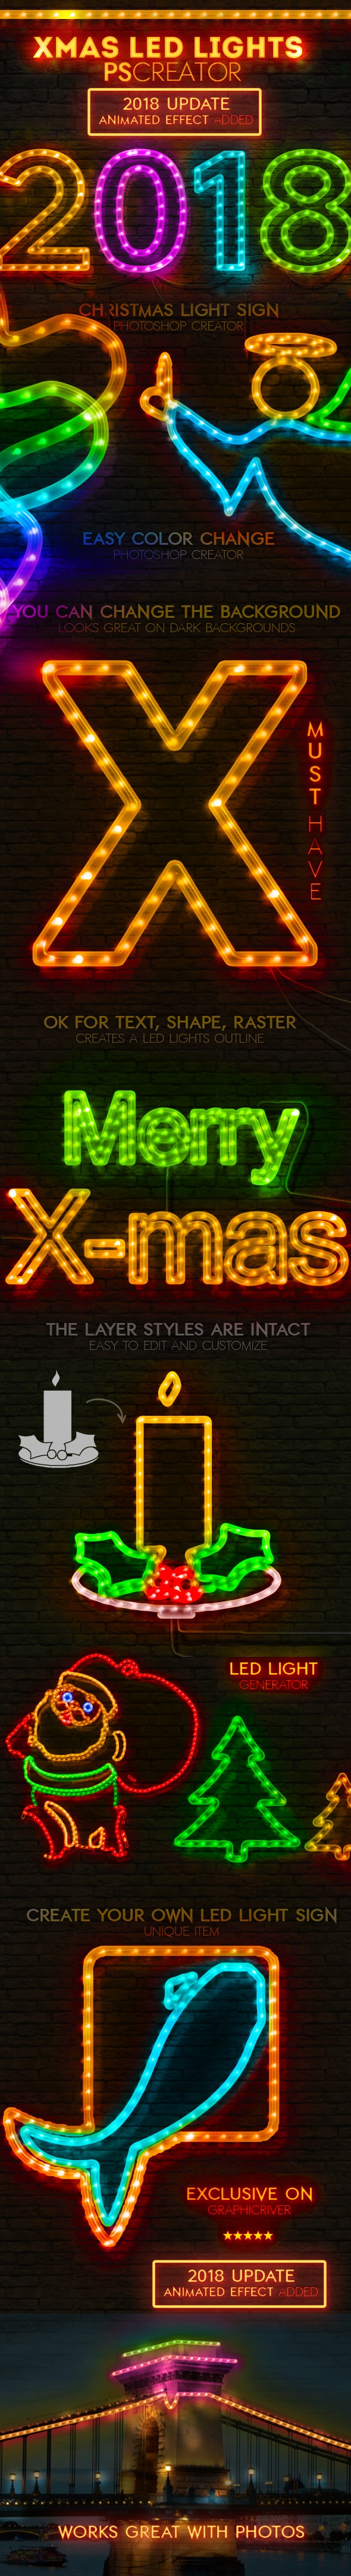 Christmas LED Light Rope Photoshop Action - Utilities Actions